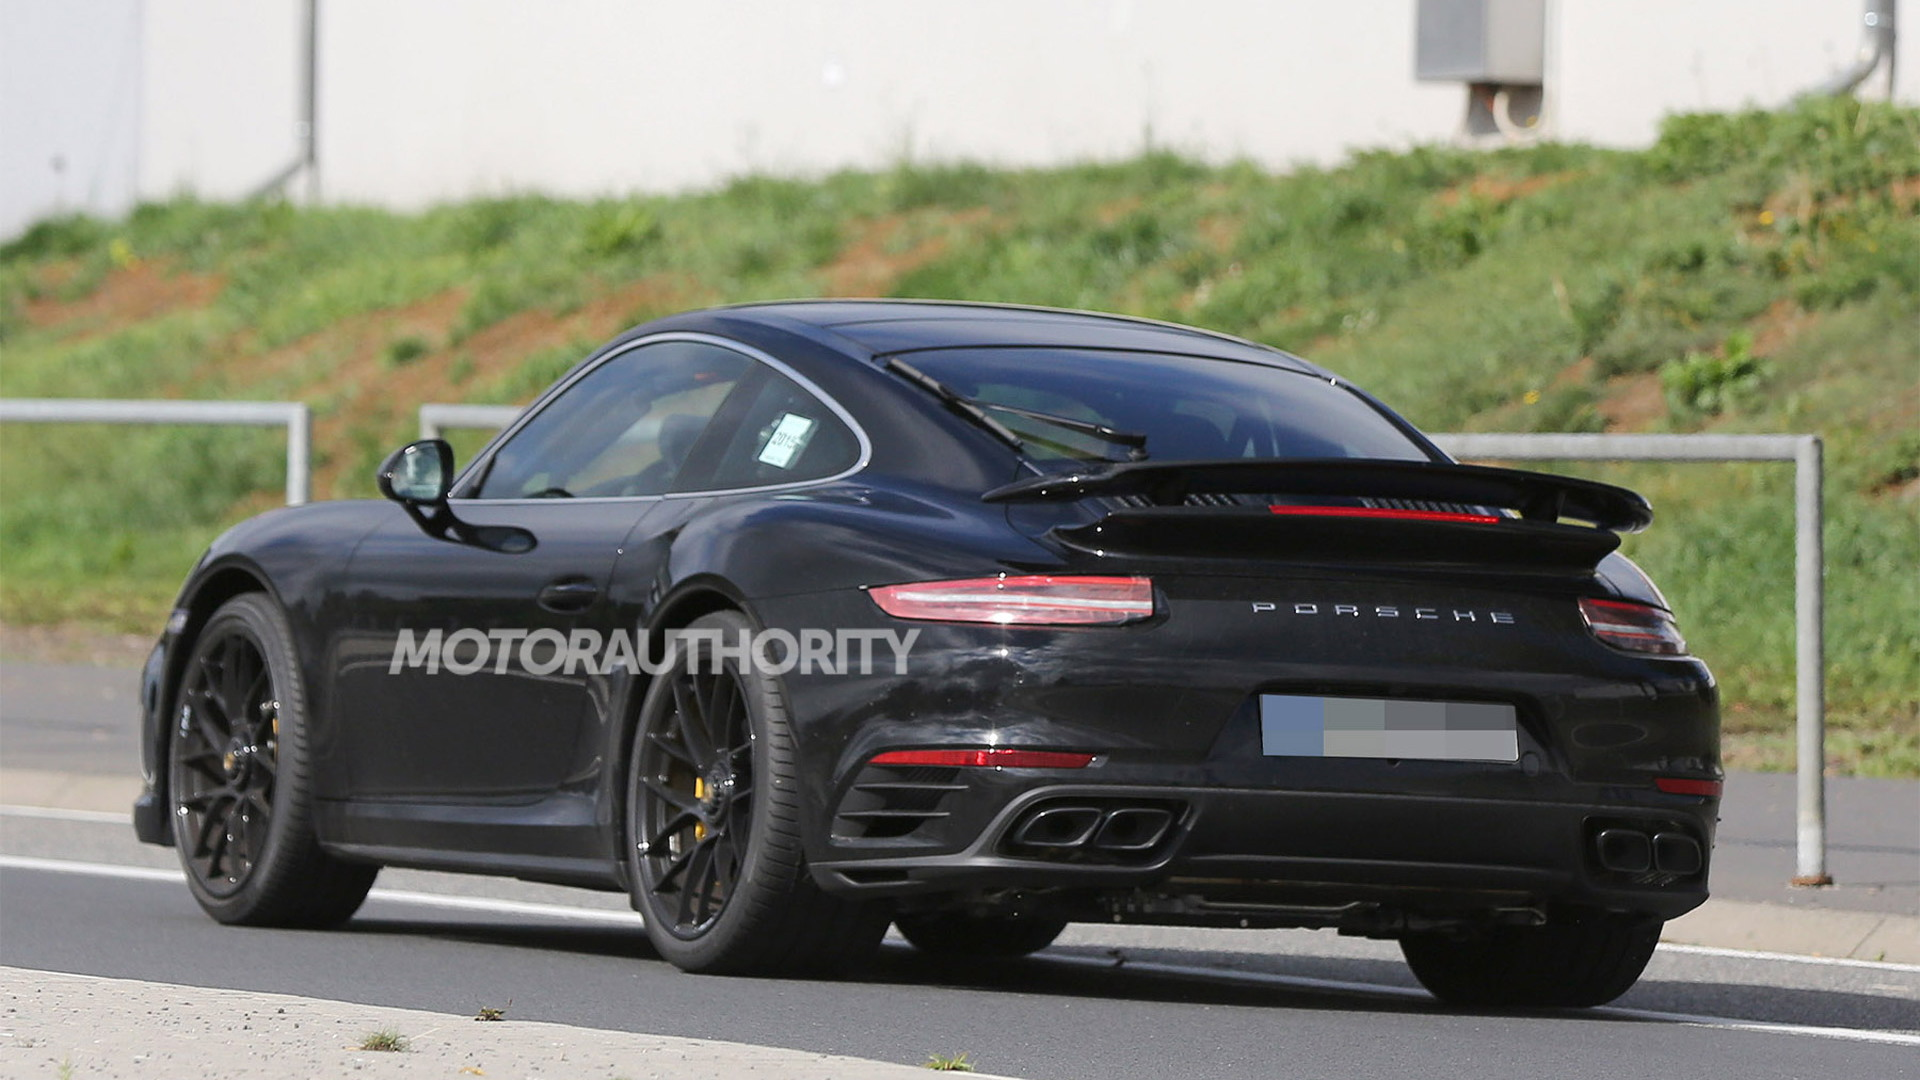 2017 Porsche 911 Turbo facelift spy shots - Image via S. Baldauf/SB-Medien